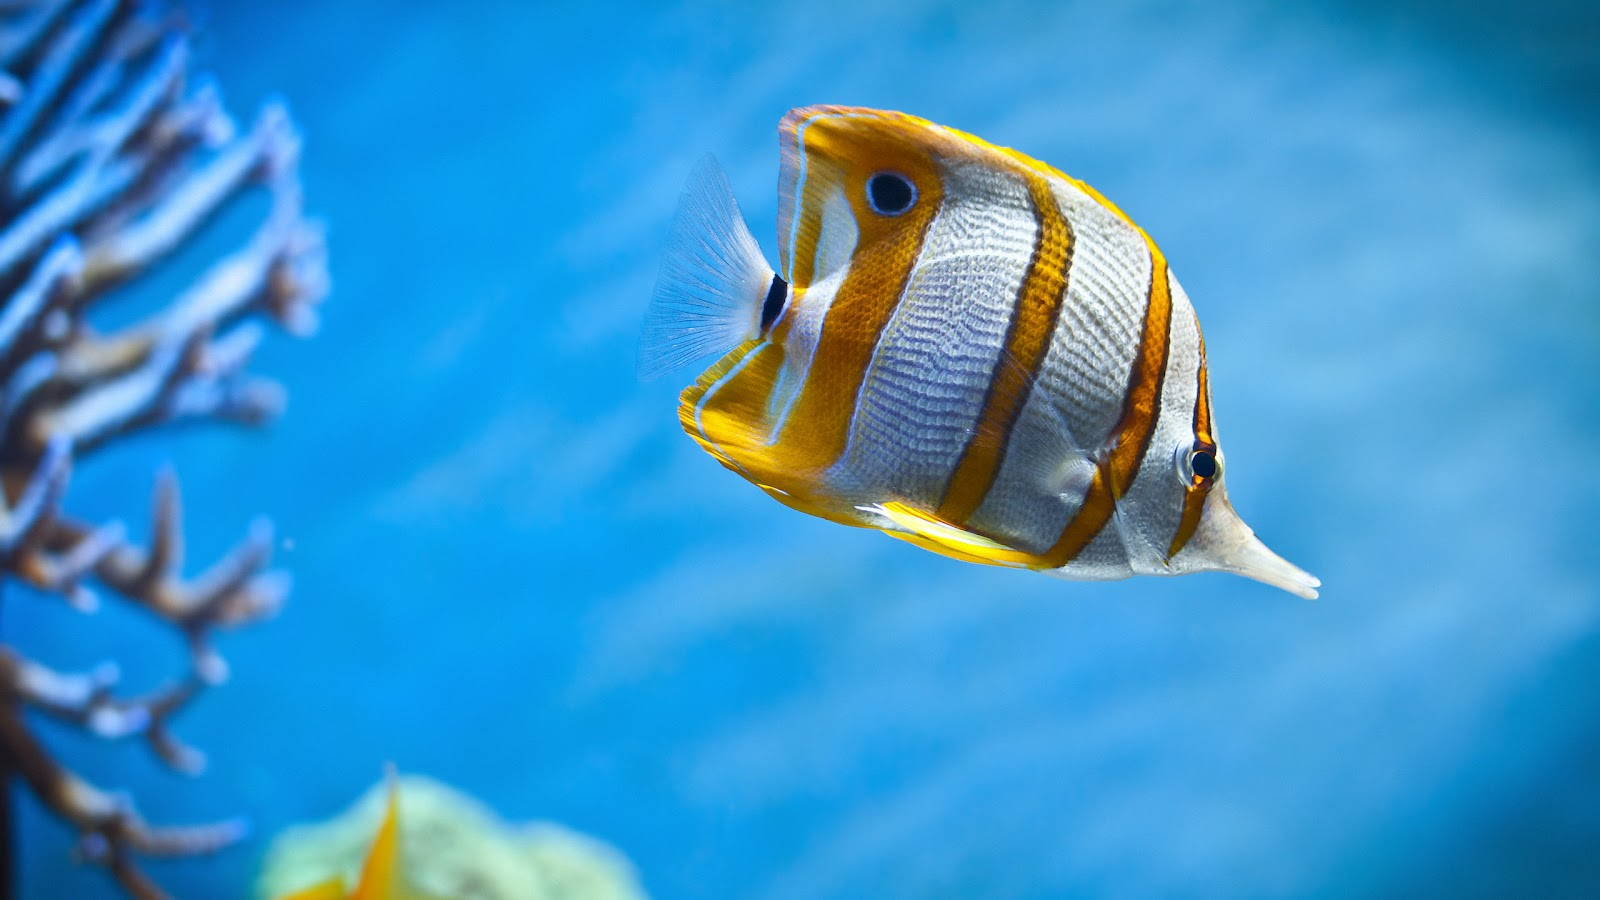 http://4.bp.blogspot.com/-S-XLcFvMIdU/UFQfnk4b9zI/AAAAAAAABt0/oaVKDJvj_b8/s1600/Fish-27-Inch-iMac-Backgrounds-Wallpaper.jpg